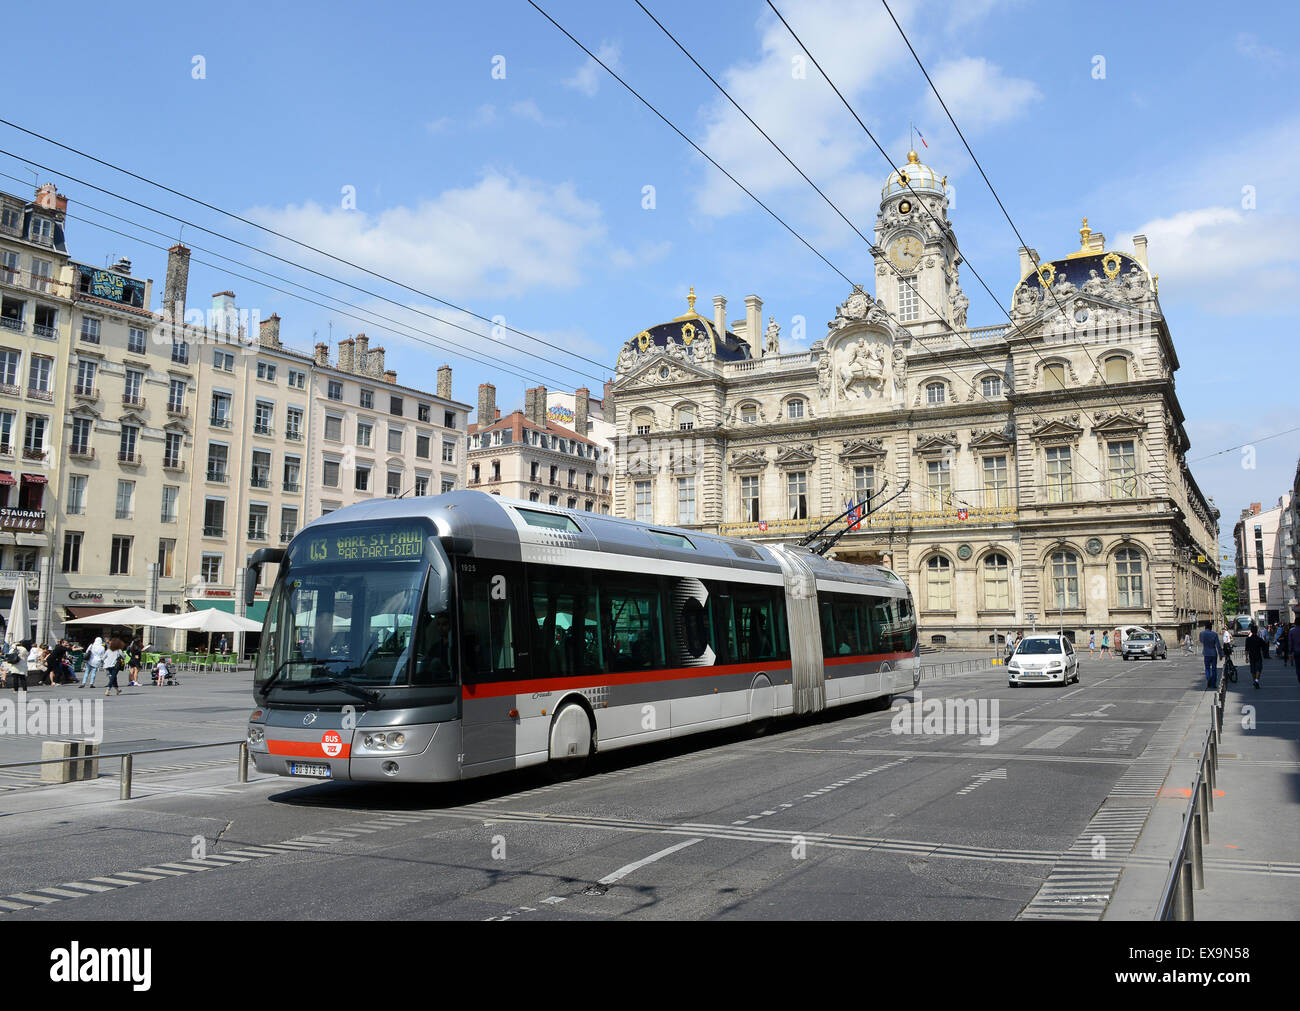 Public transport electric tram trams bus buses Lyon France French - Stock Image